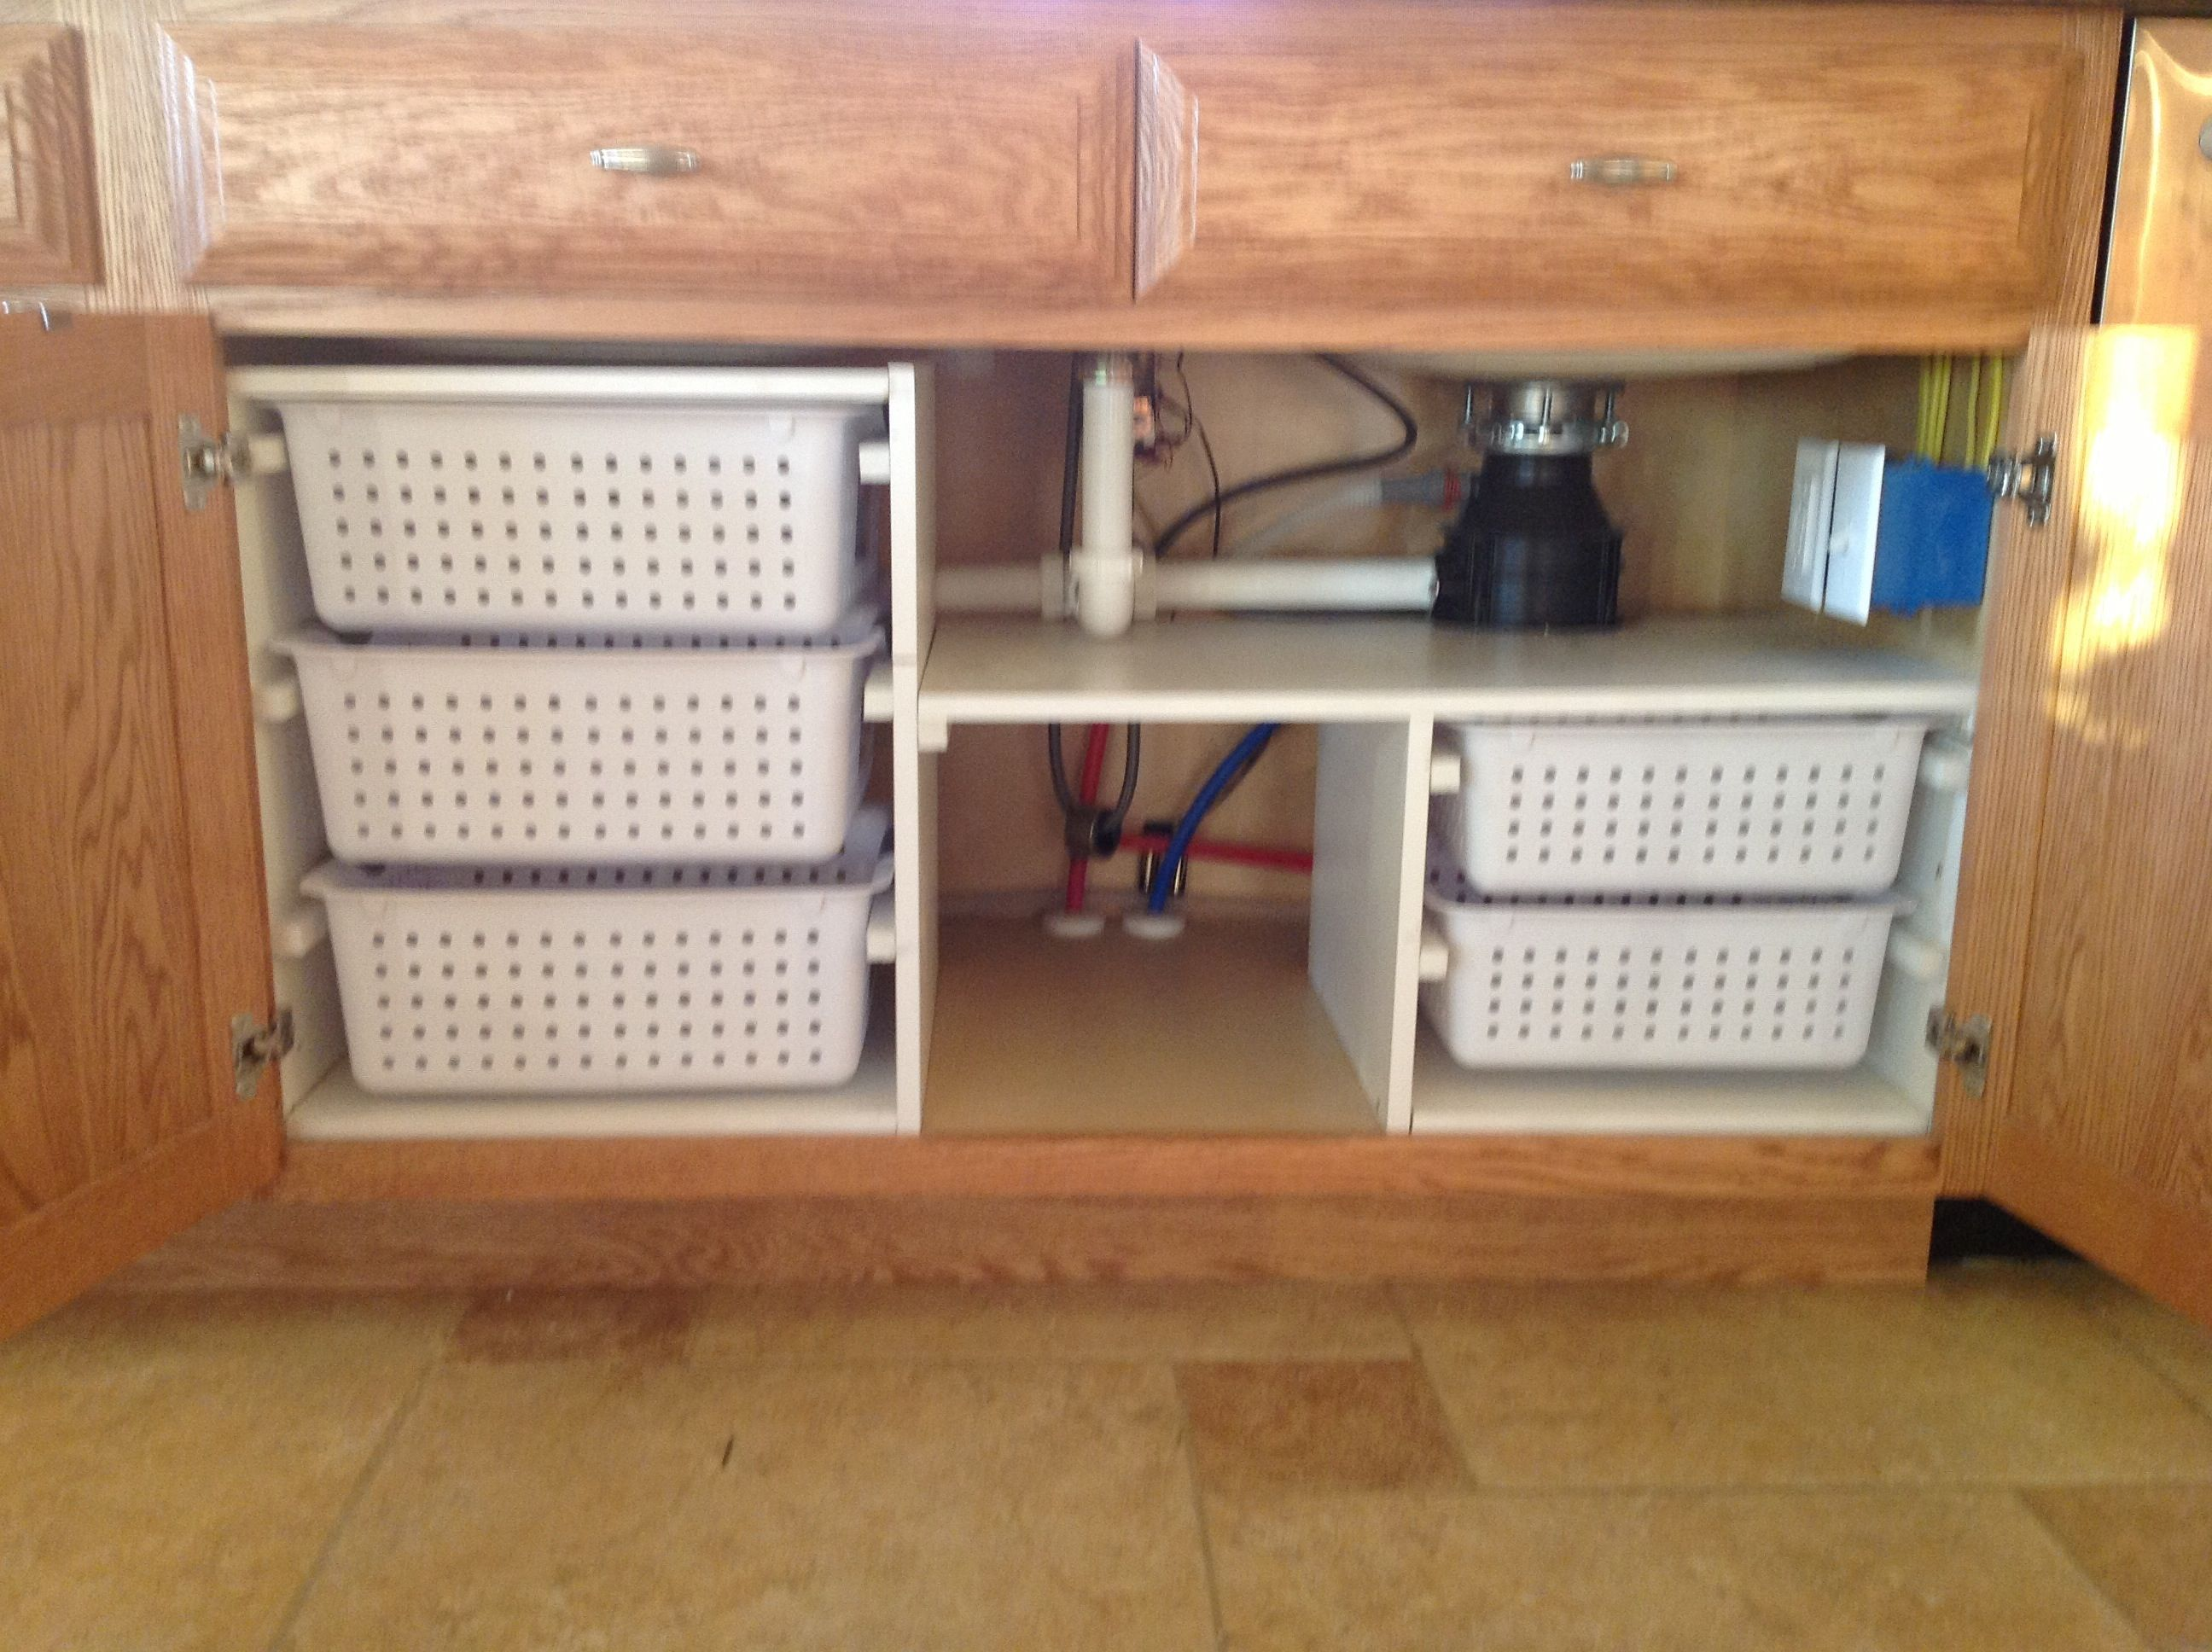 Under Sink Organizer Ikea Under Kitchen Sink Organization My Husband Built For